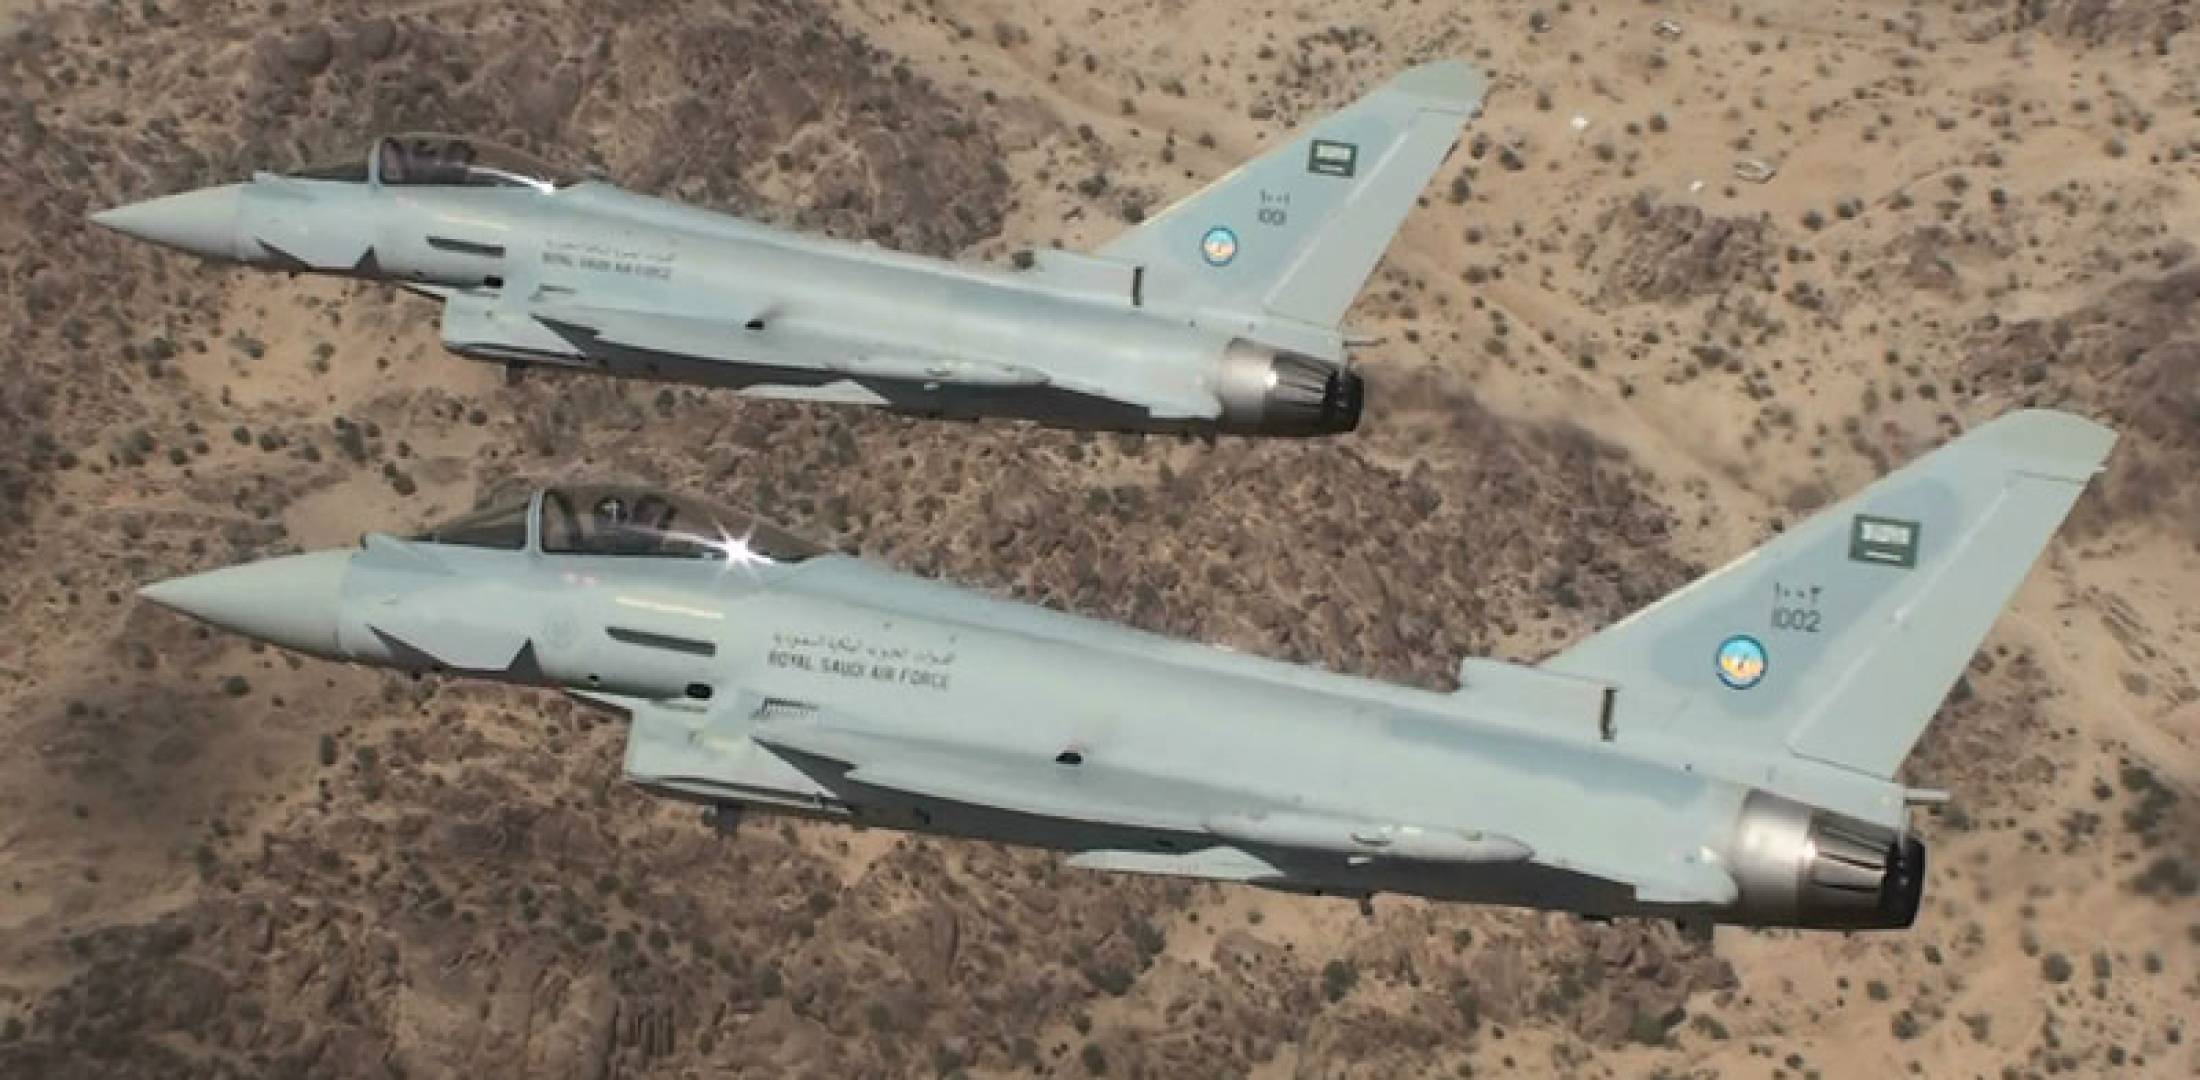 Royal Saudi Air Force Typhoons